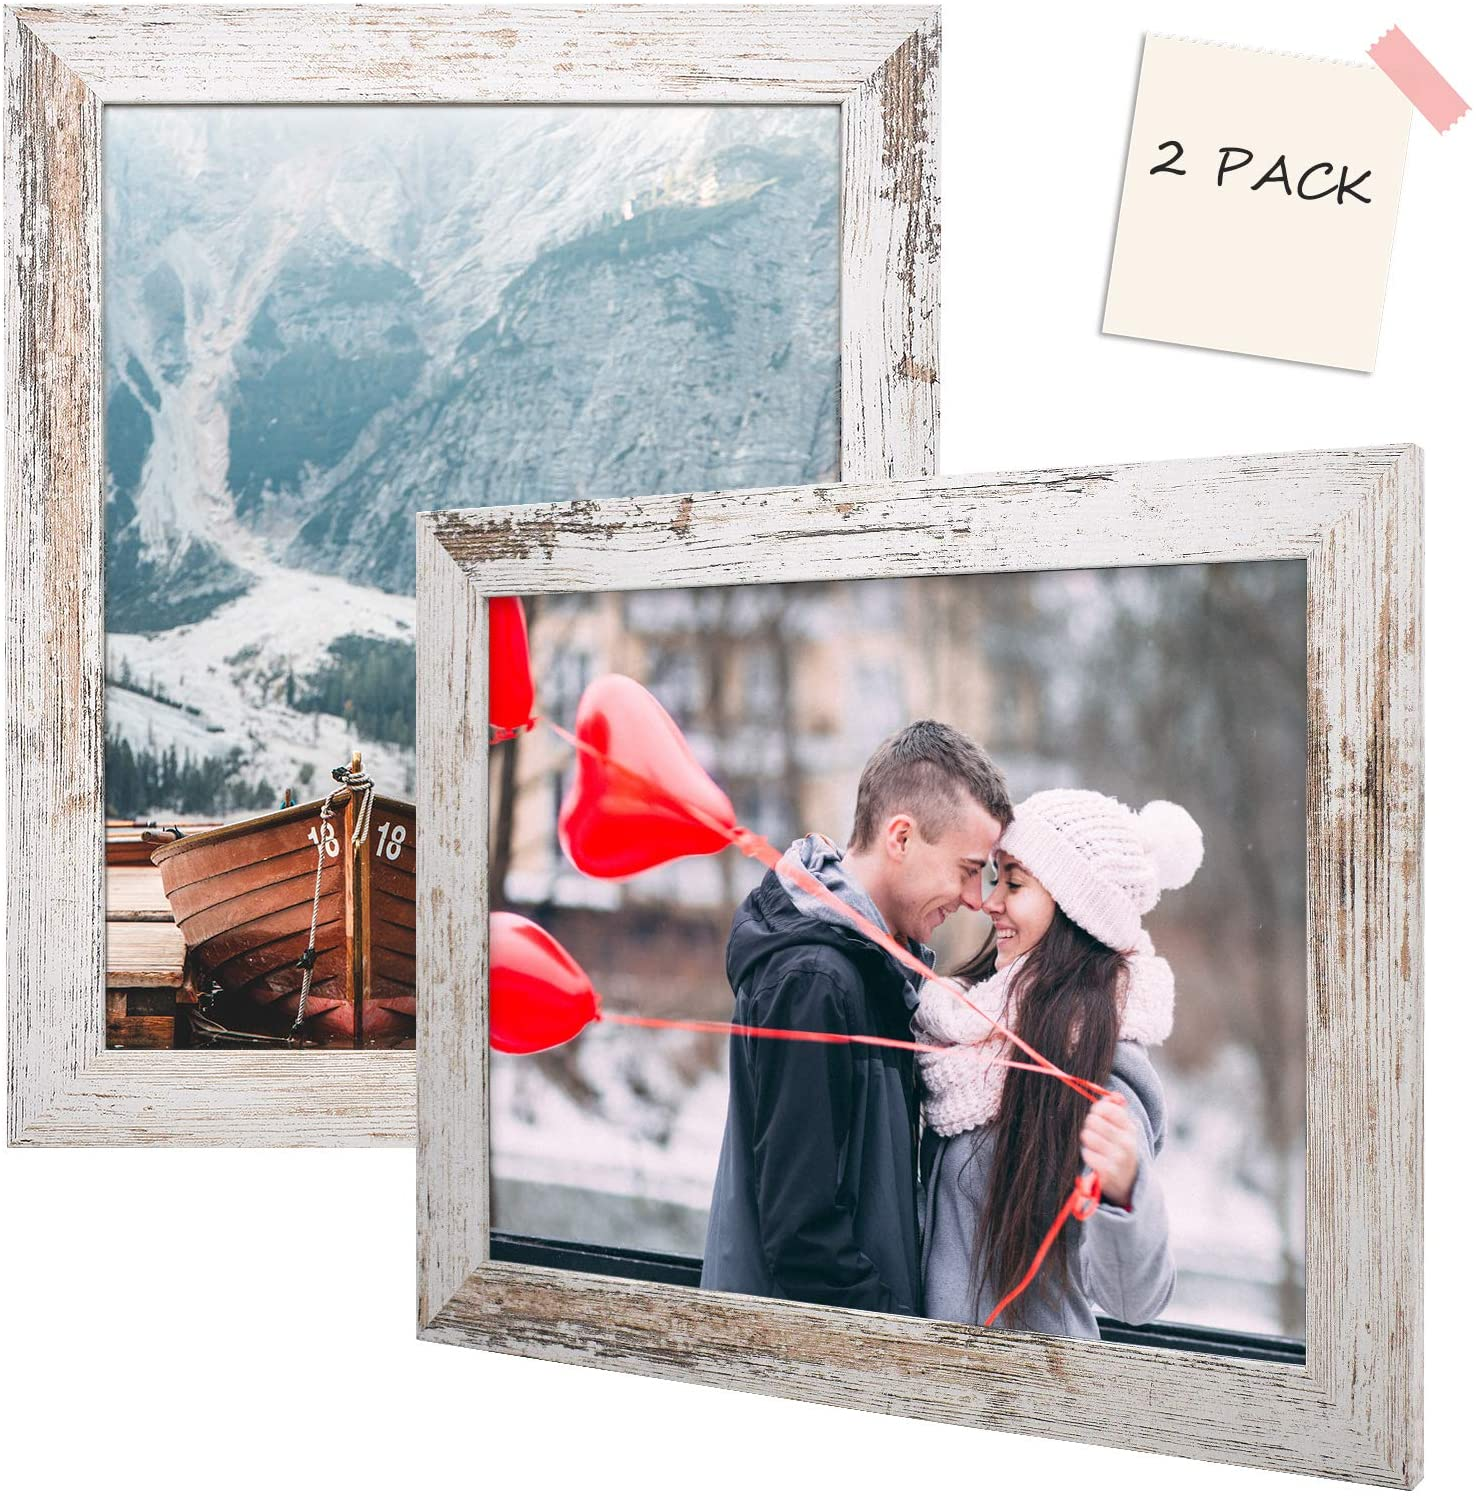 Golden State Art, Set of 2, 11x14 White Picture Frame - Wide Molding - Wood Grain Style - Back Hangers for Wall Display - Great for Baby Pictures, Weddings, Portraits